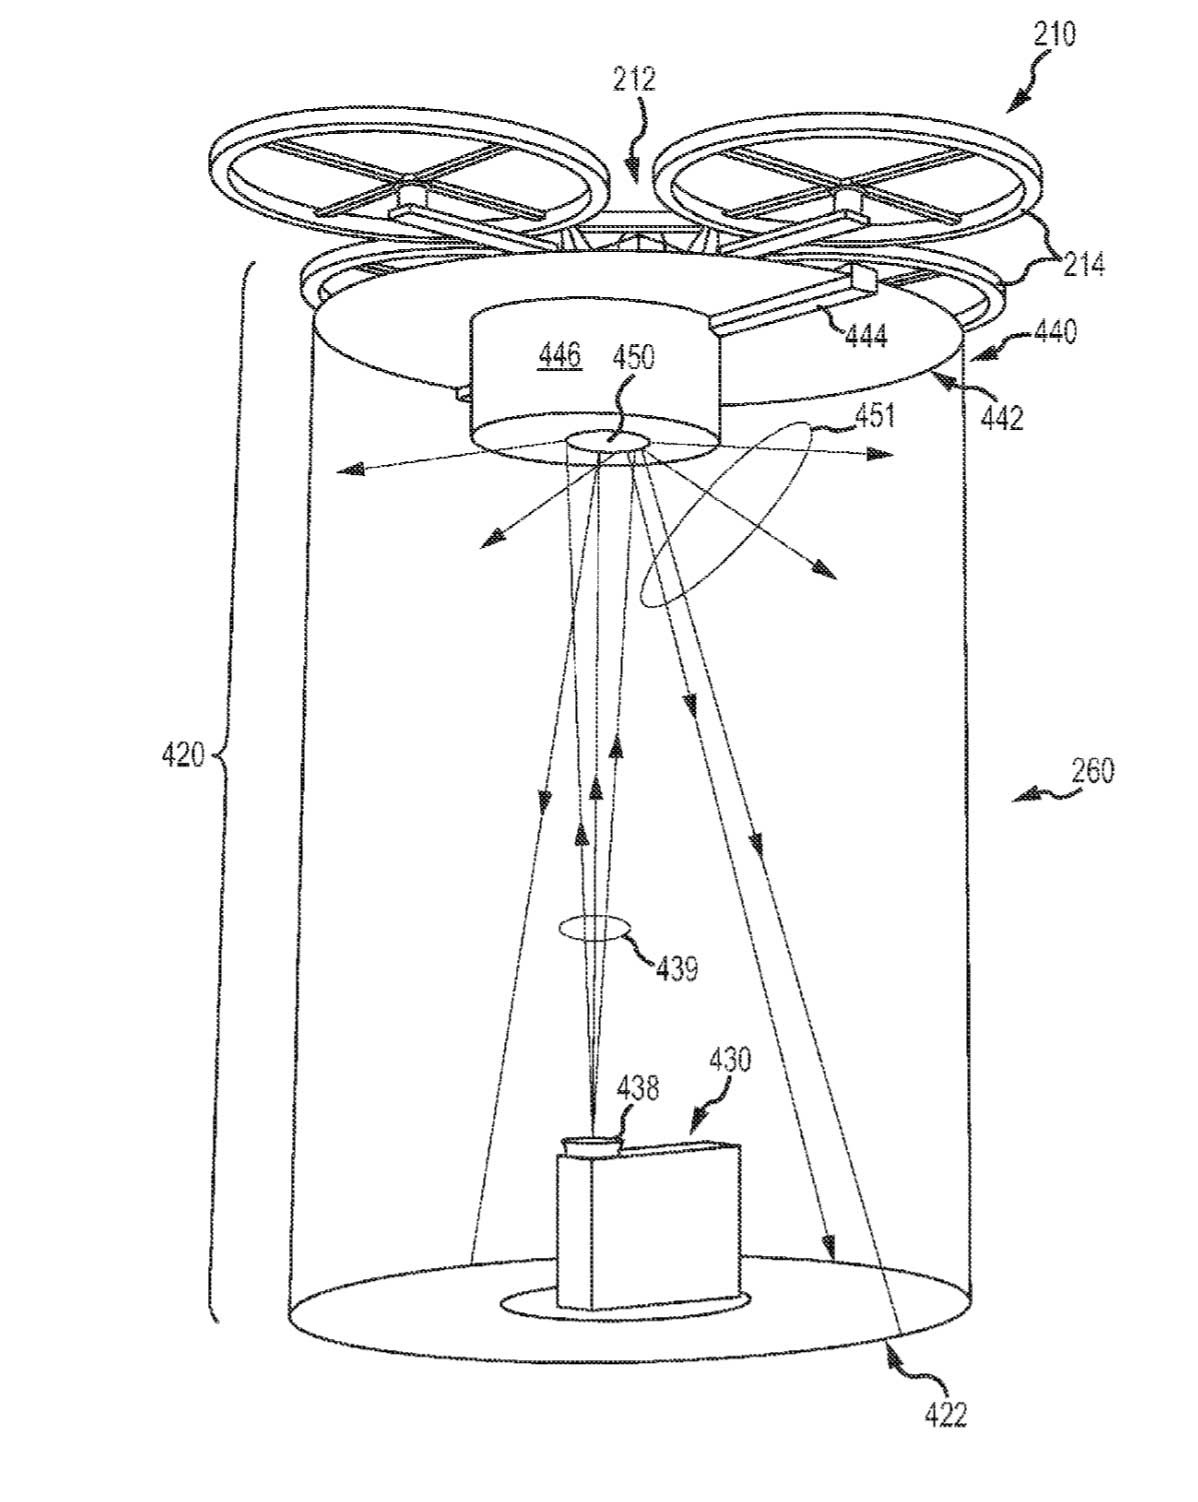 Drone Projection patent